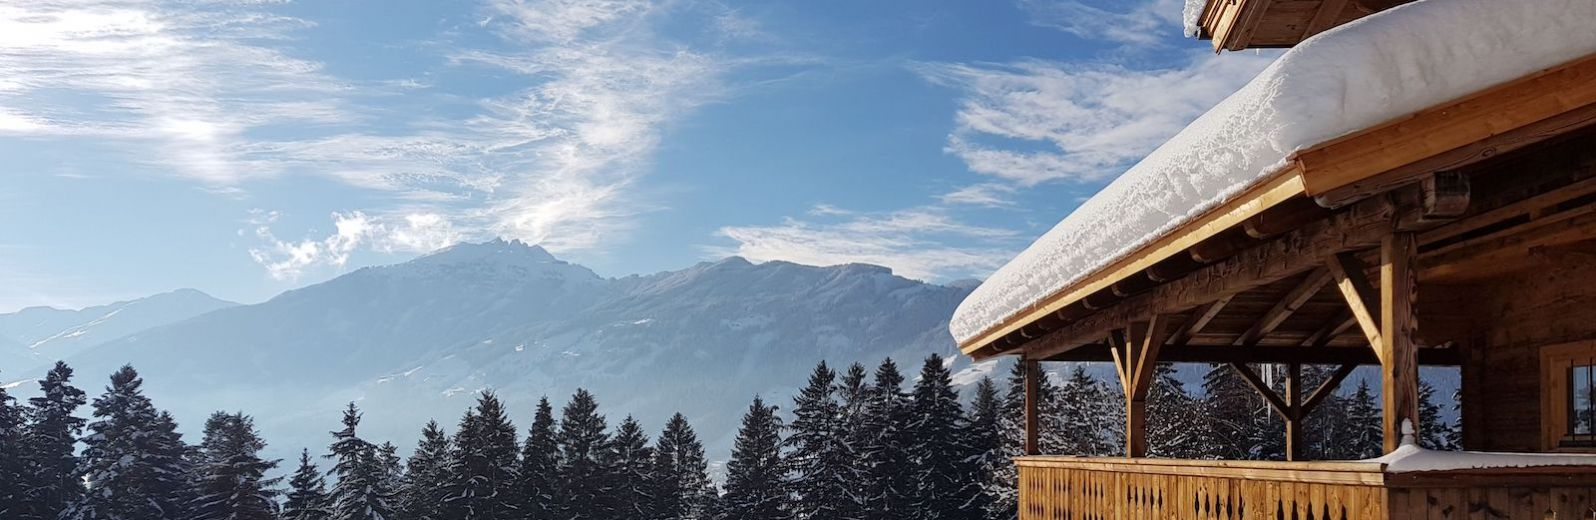 The Zillertal Valley in Tirol Austria | blue sky, mountains, alps